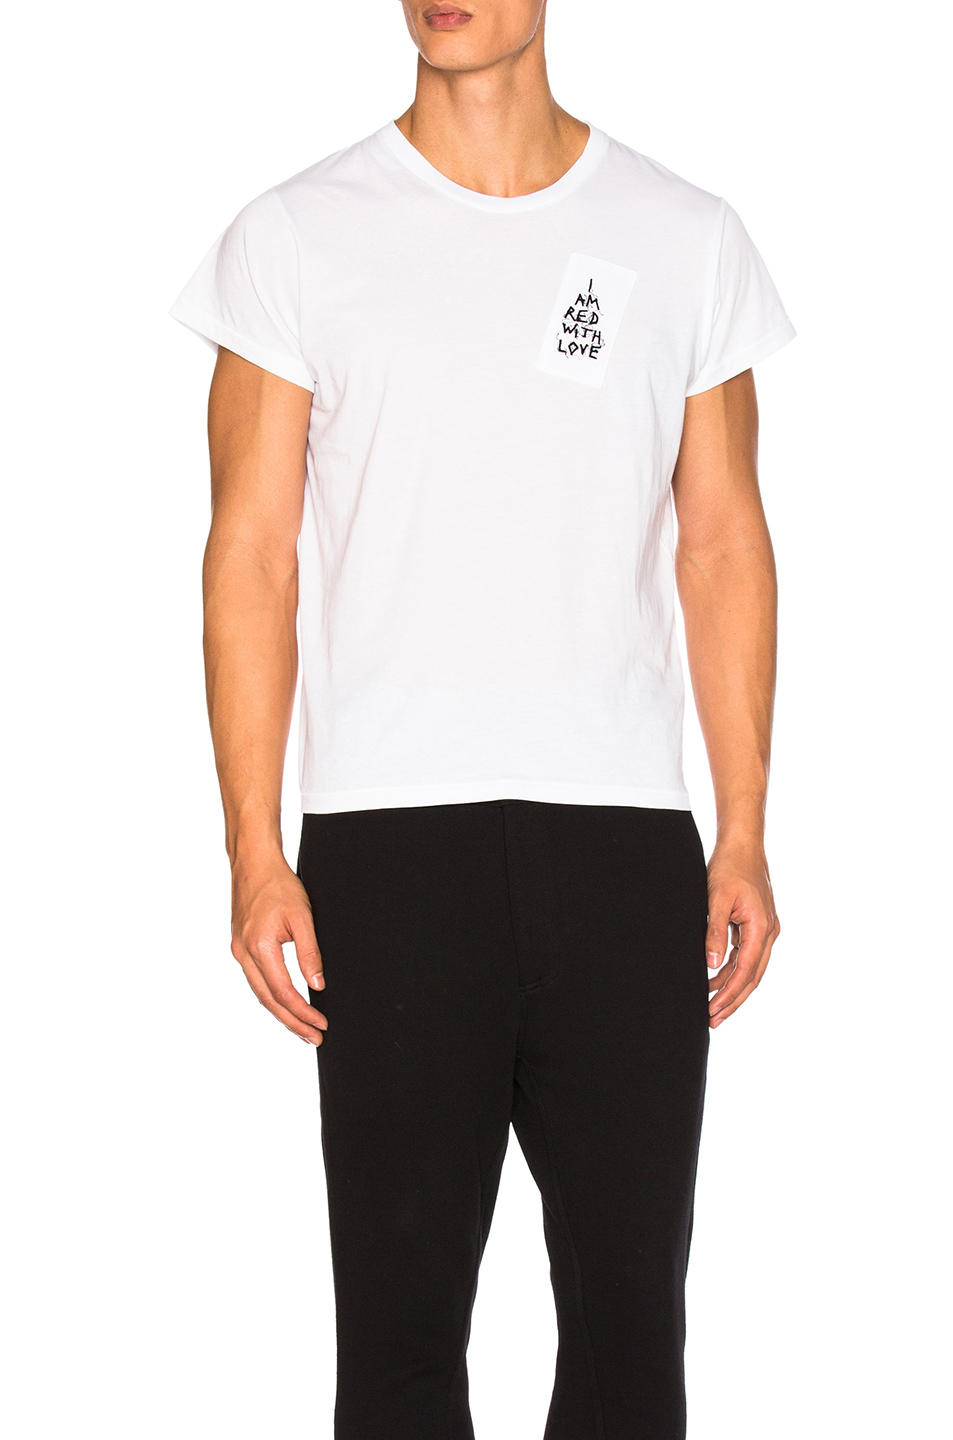 Ann Demeulemeester Love Embroidery Tee in White